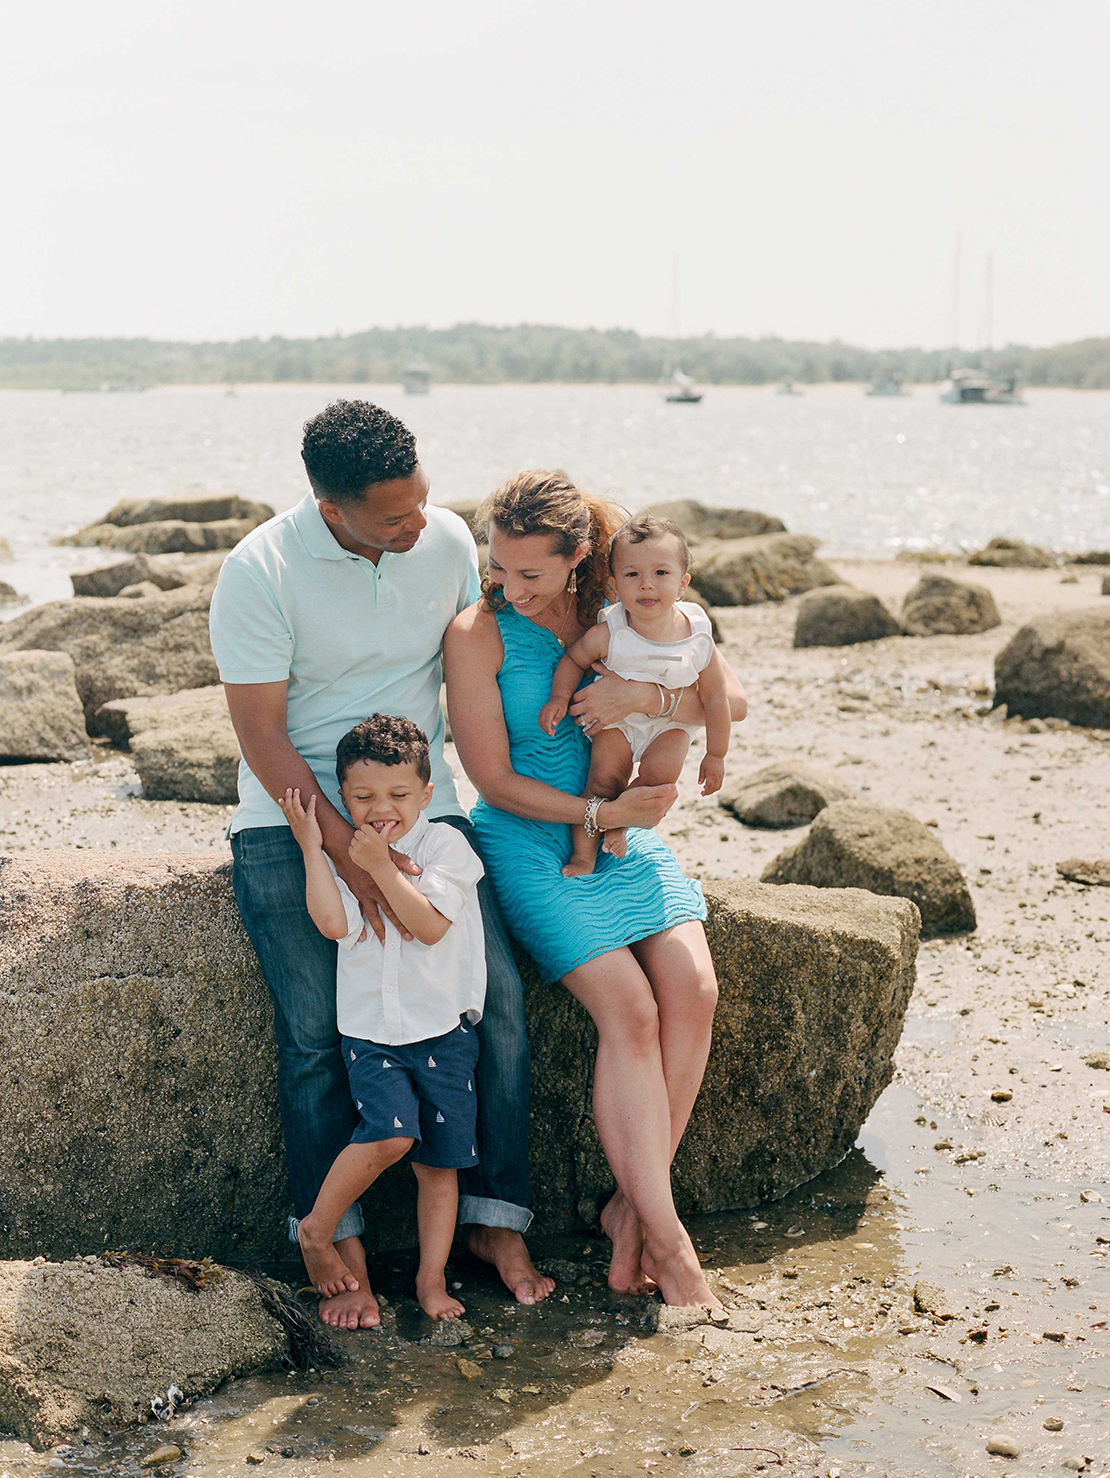 05_onset_beach_family_portrait_session_cape_cod_orlando_florida_fine_art_photographer_heidi_vail